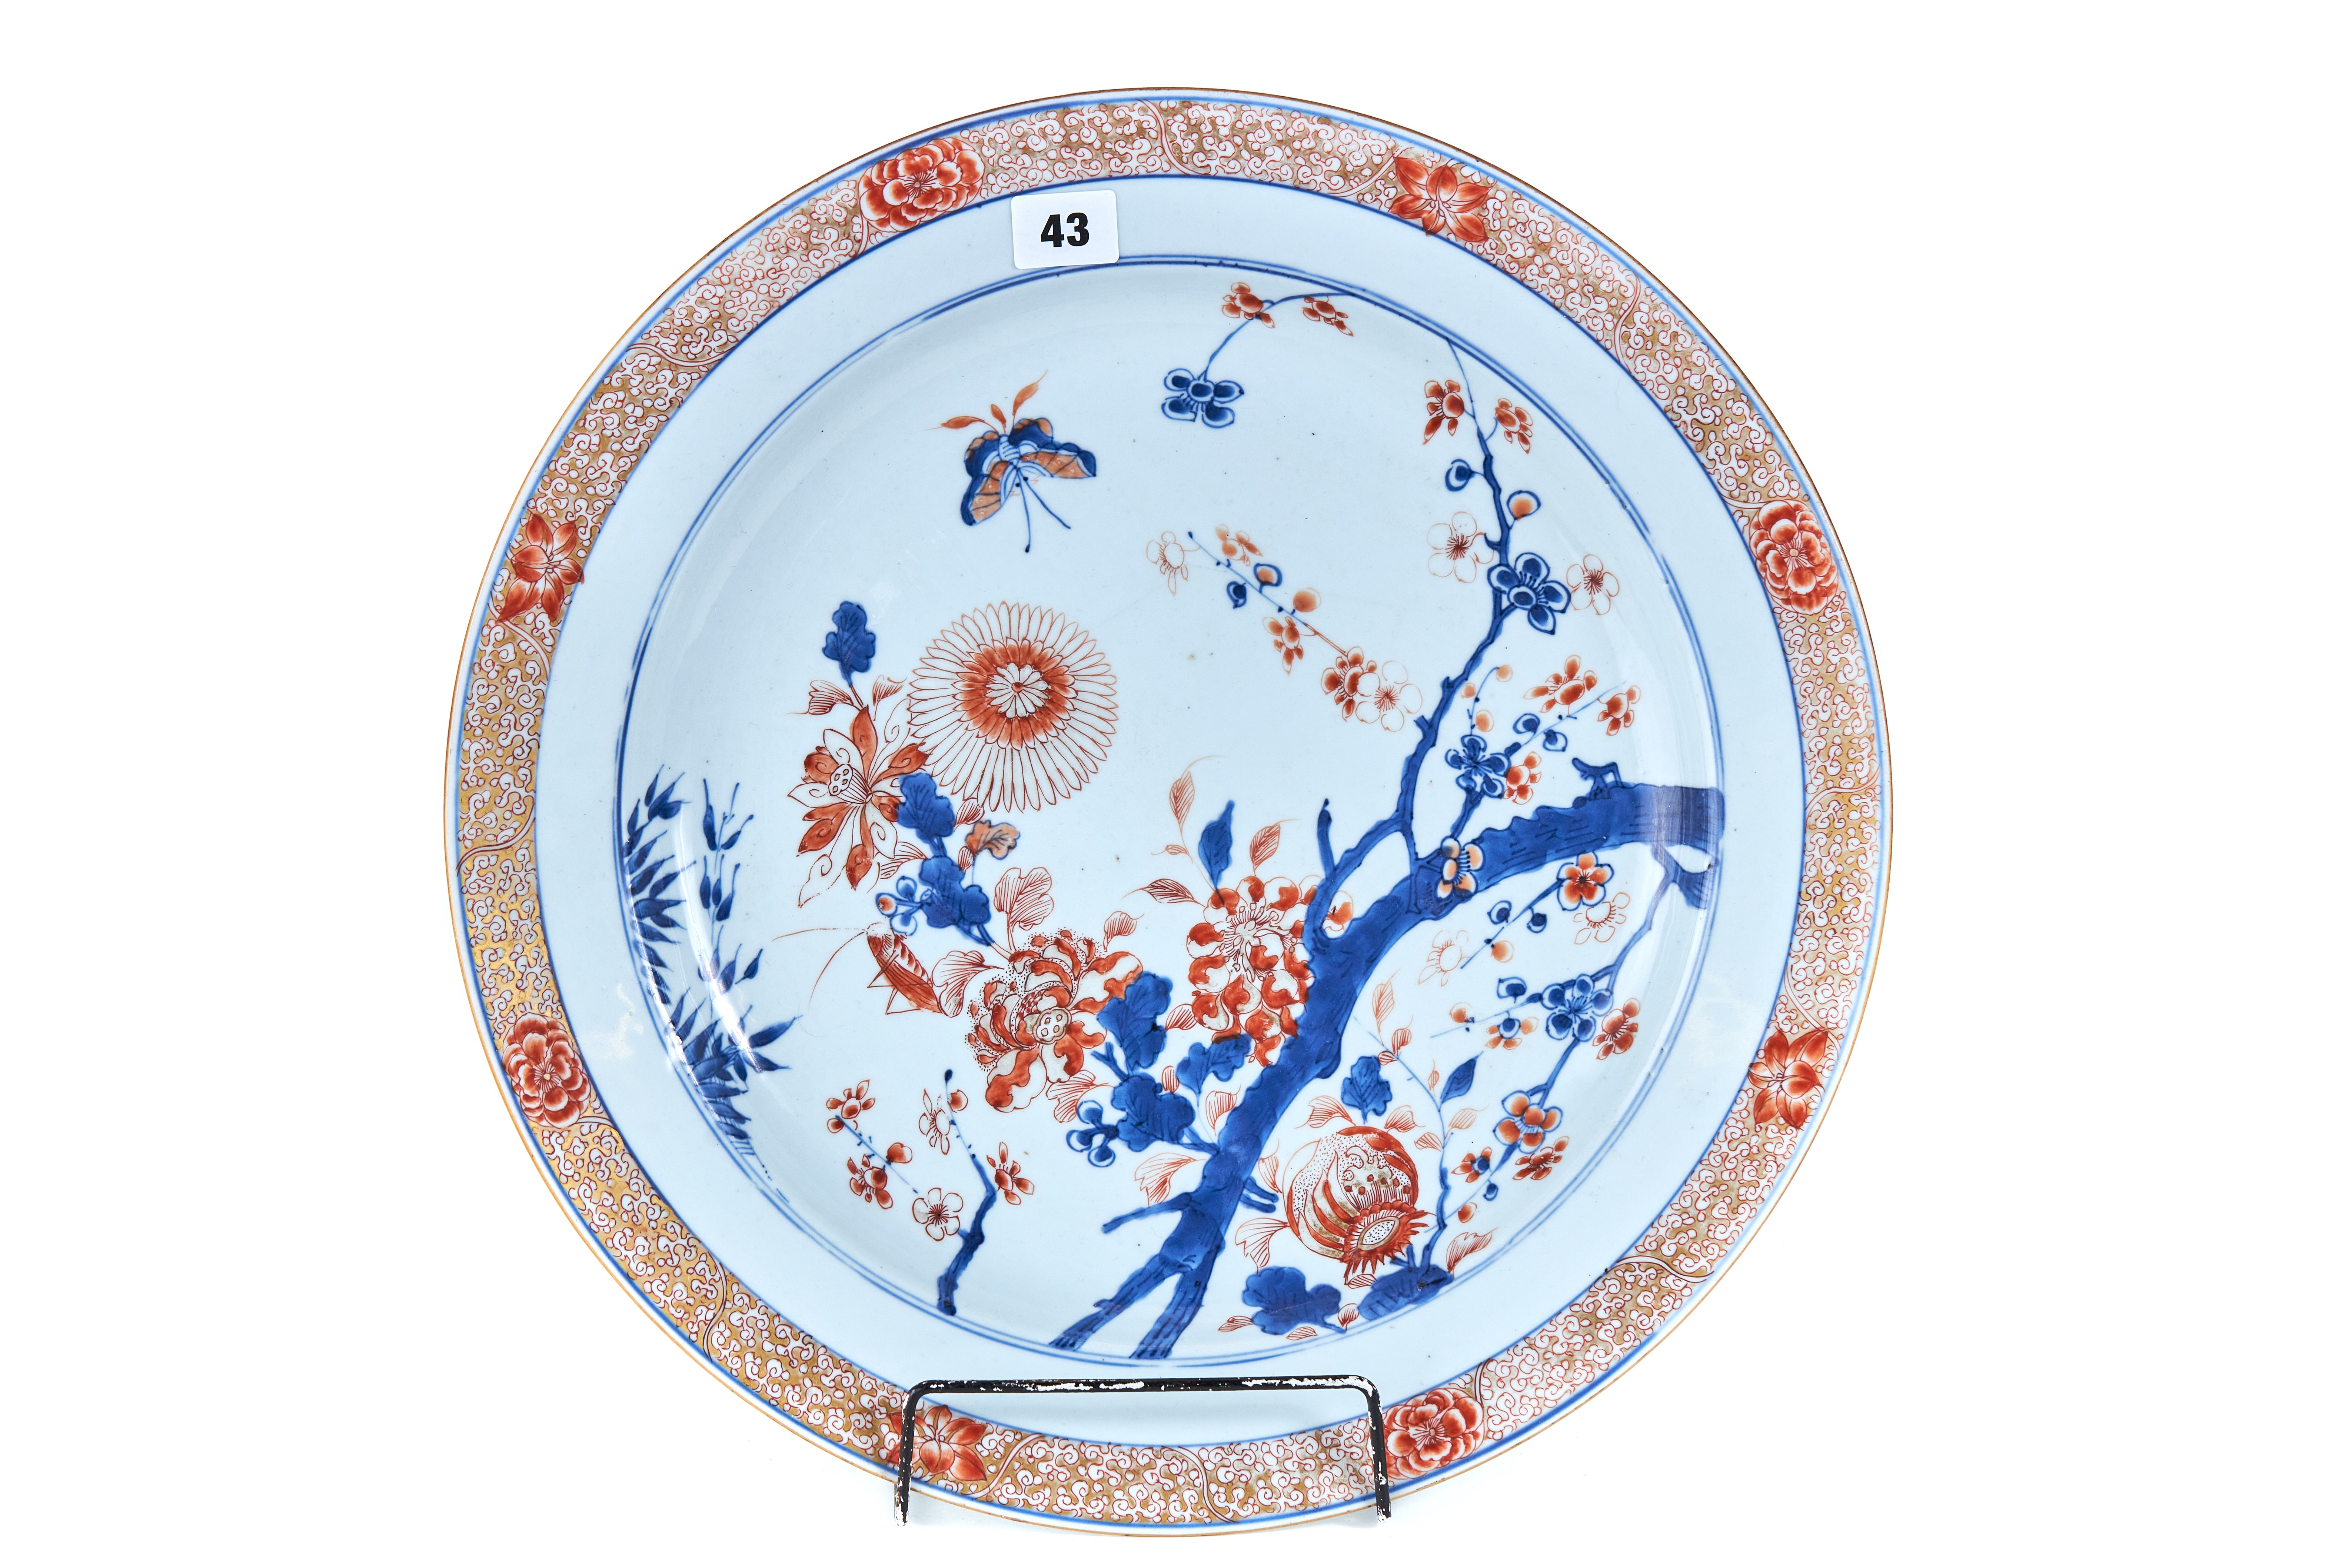 AN UNUSUAL 18TH CENTURY CHINESE IMARI PORCELAIN CHARGER decorated with flowering branches,